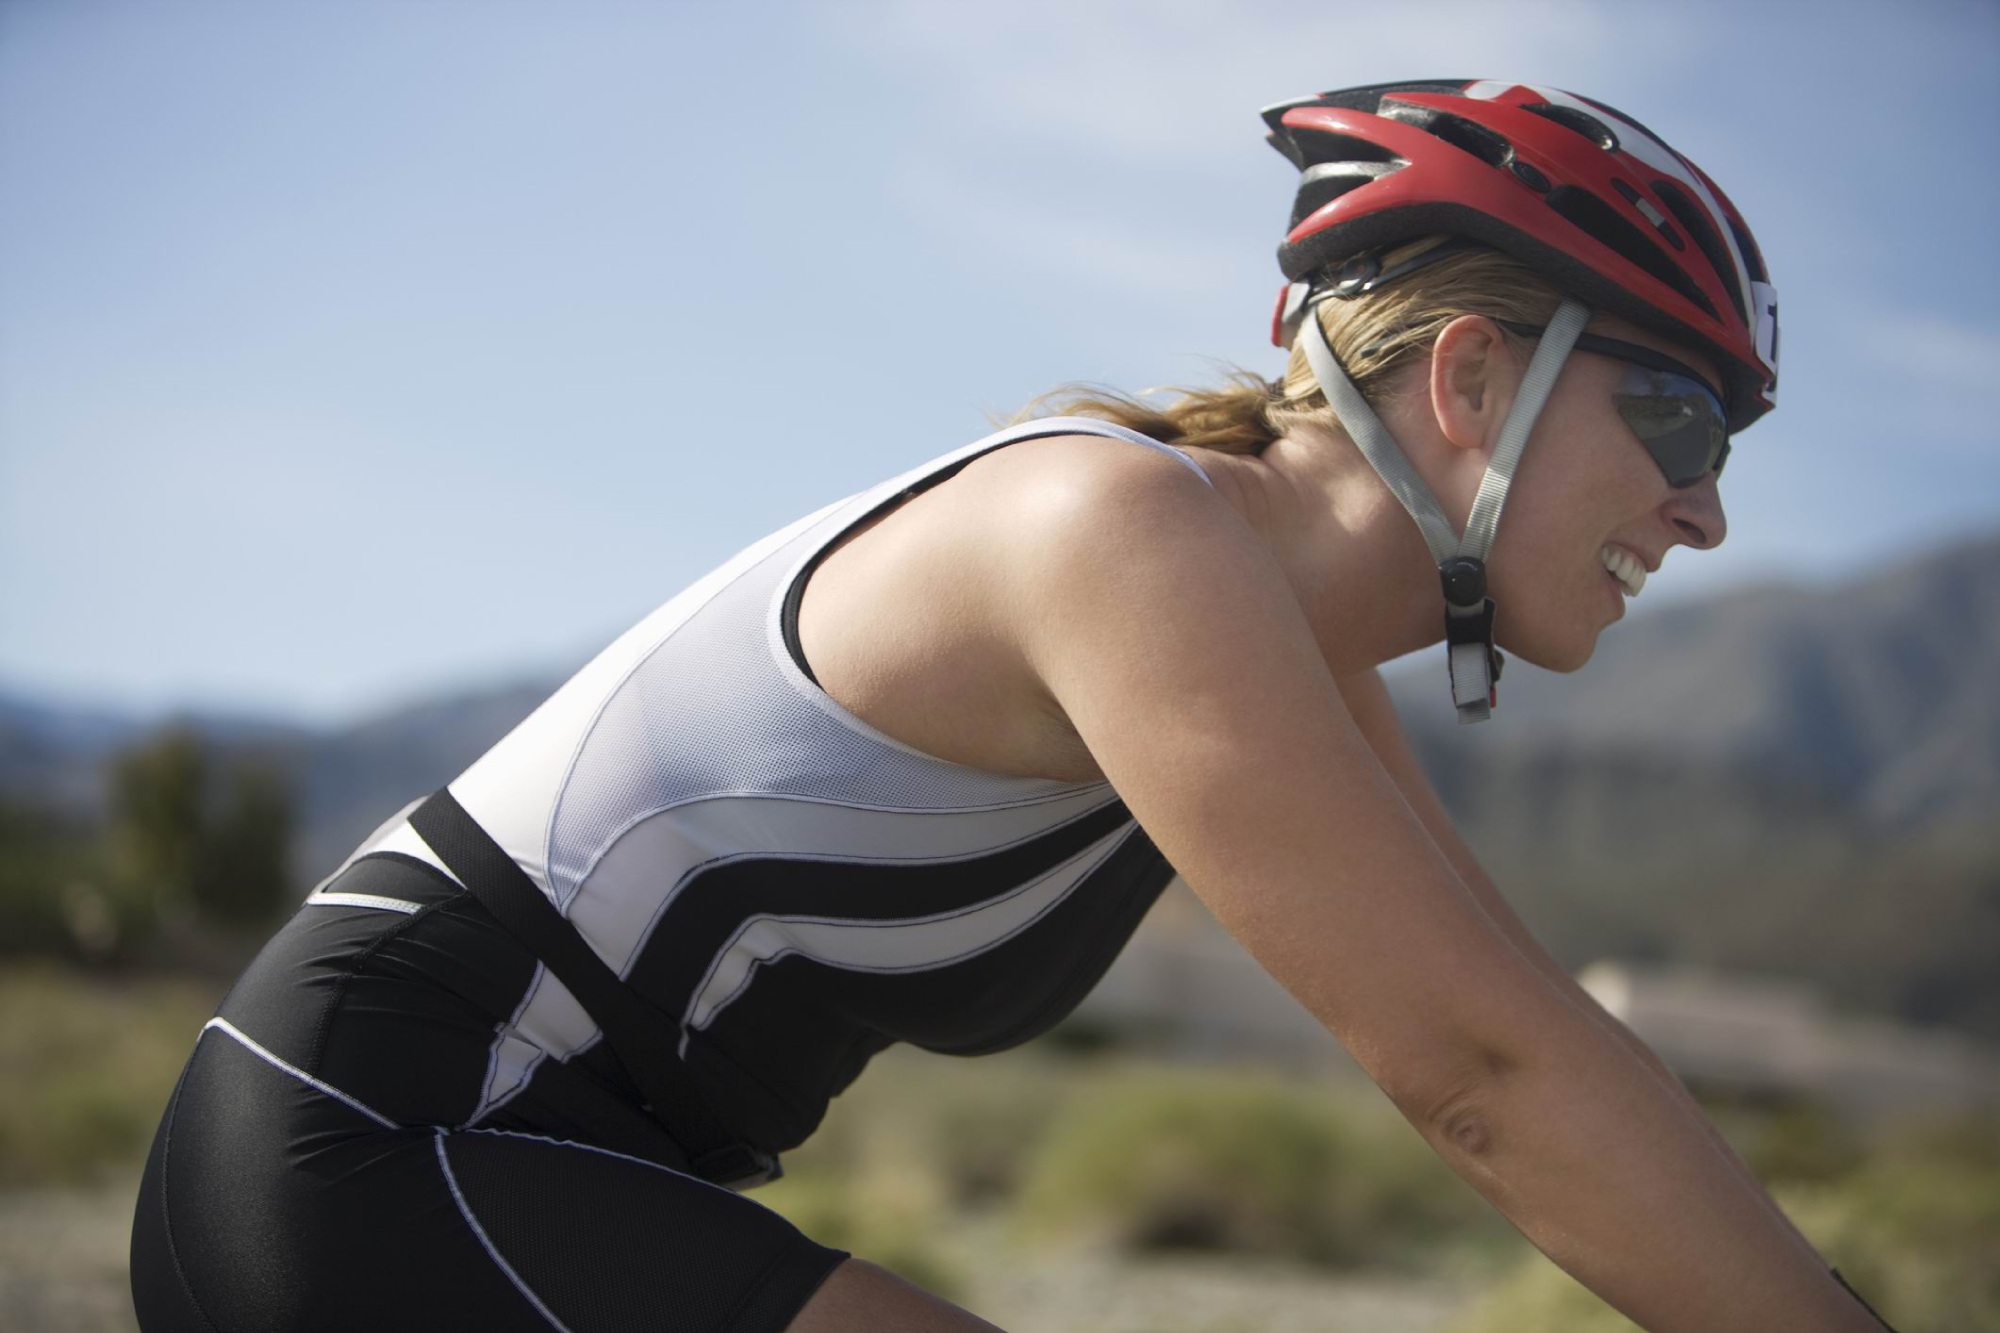 Mandatory bike helmets: opinion still divided on cycling's most contentious issue